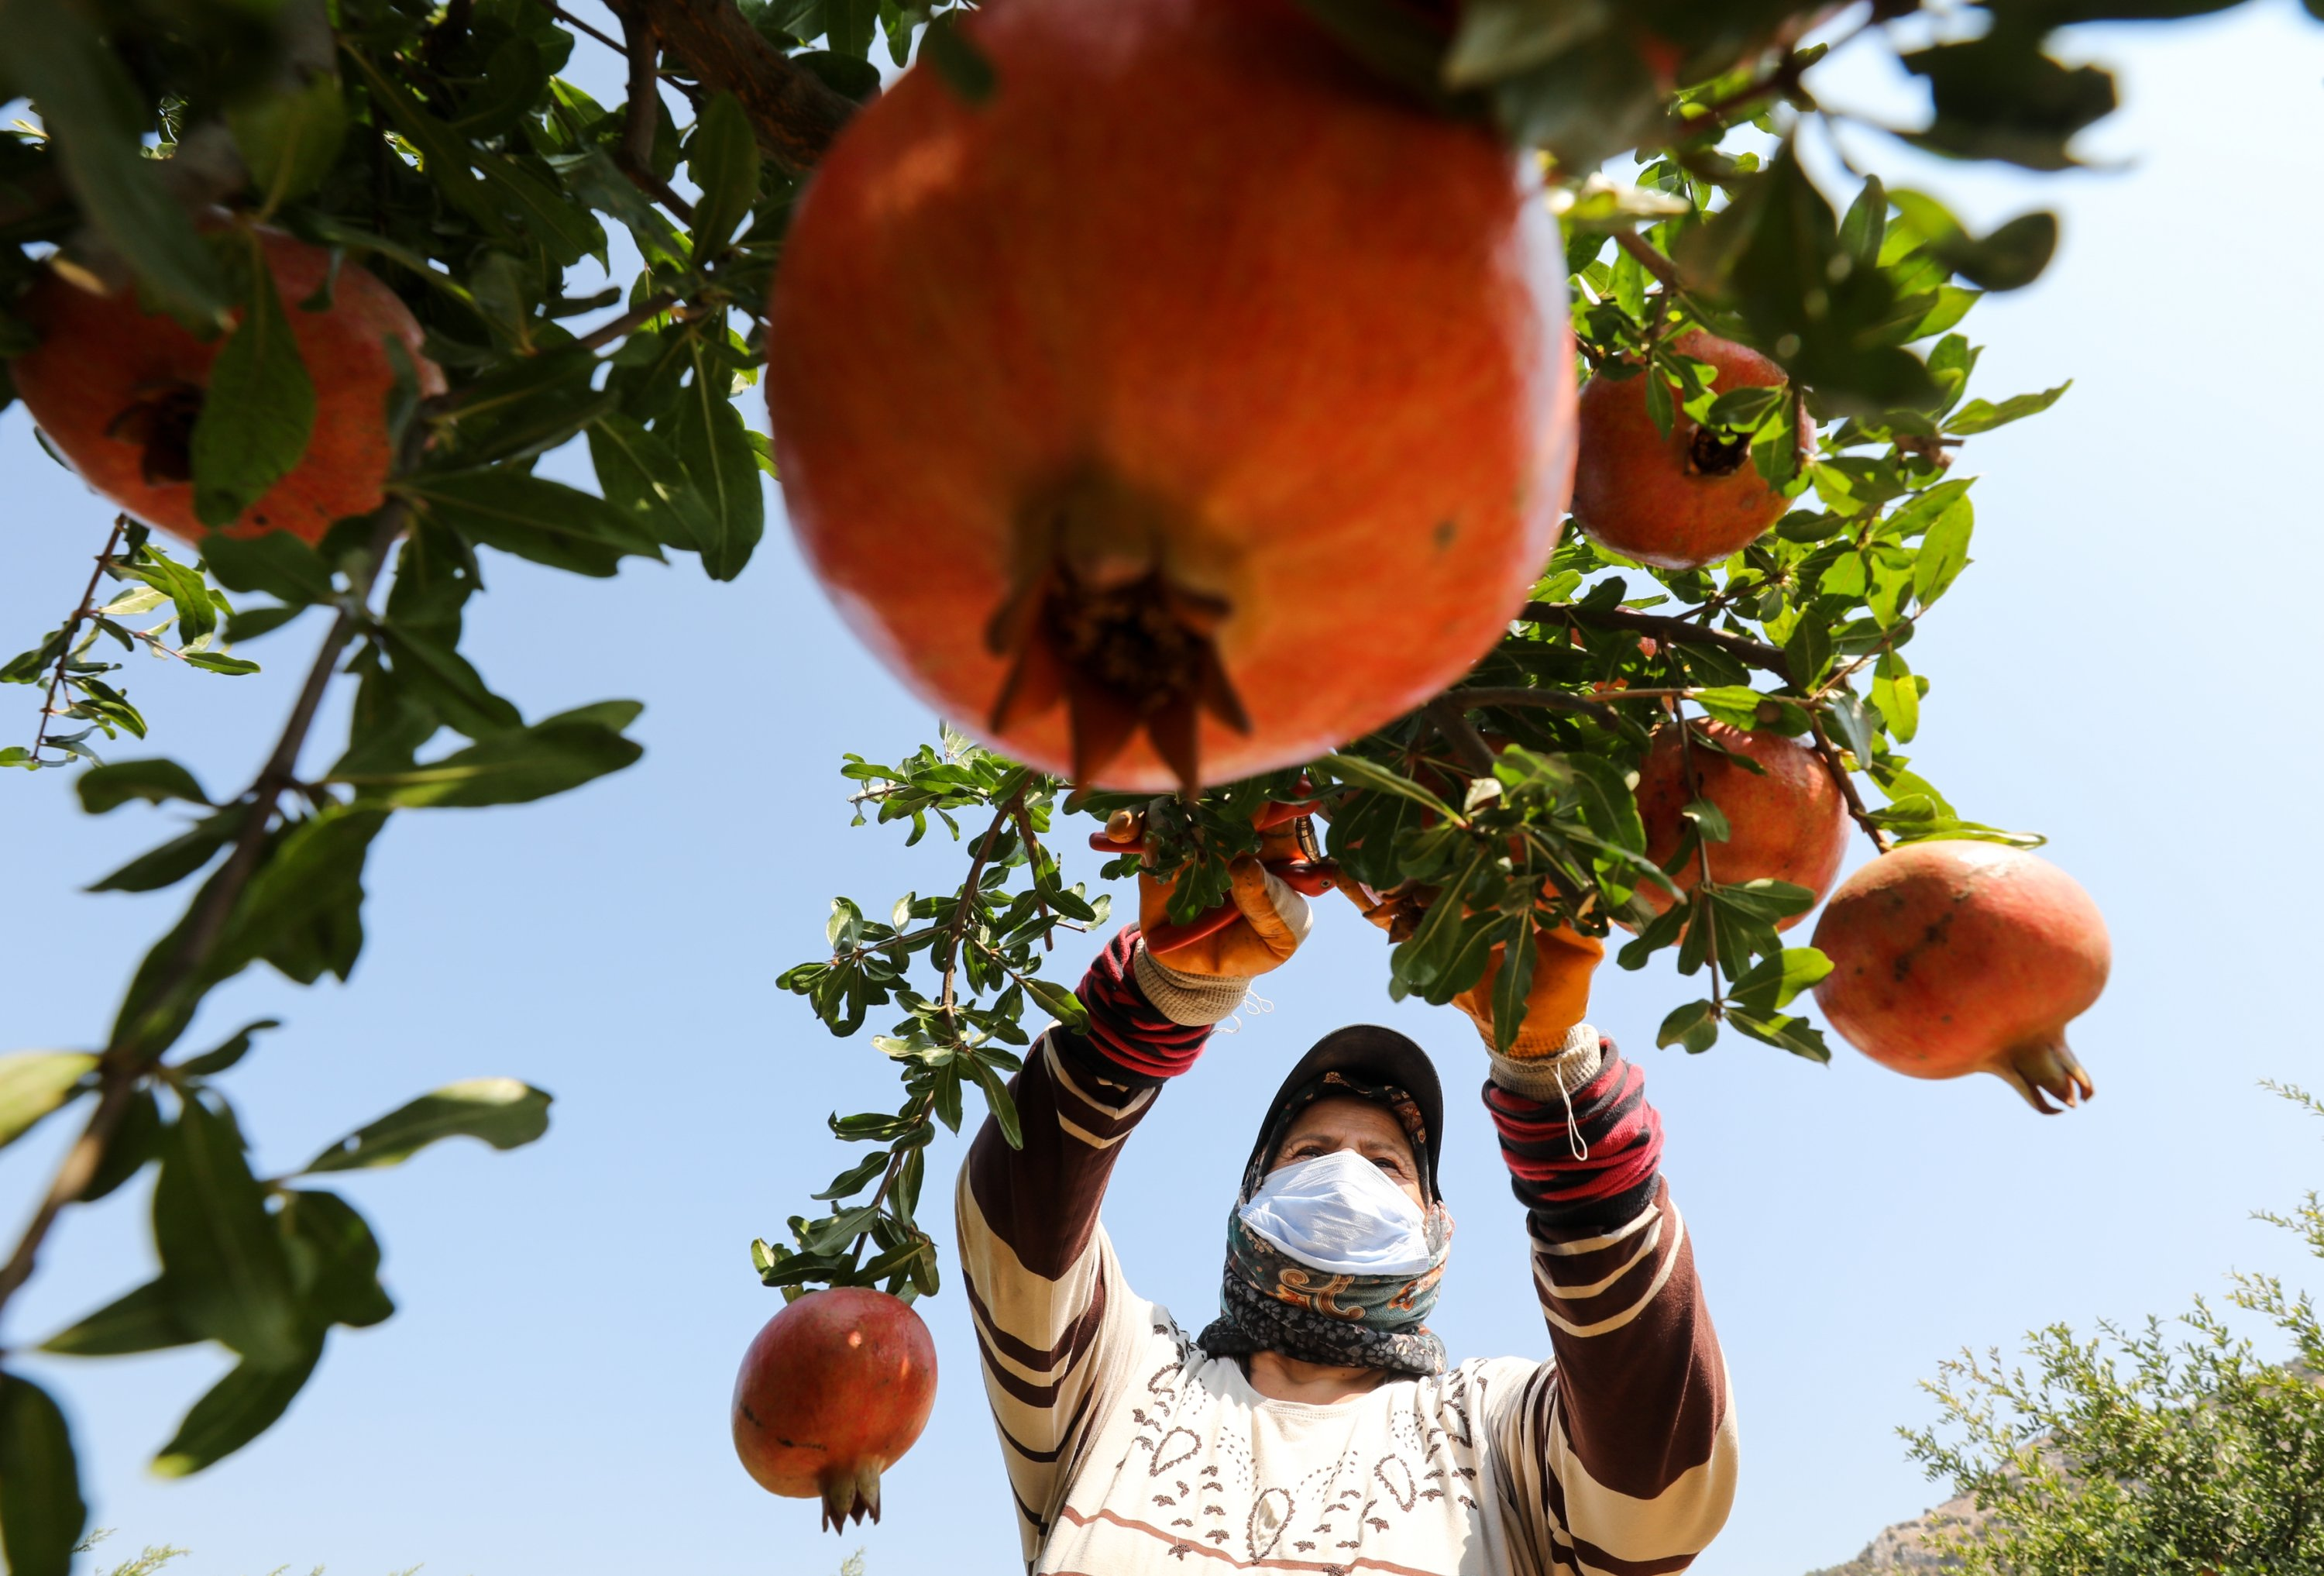 A woman collects pomegranates from trees in Izmir's Selçuk district, Sept. 22, 2020. (AA Photo)